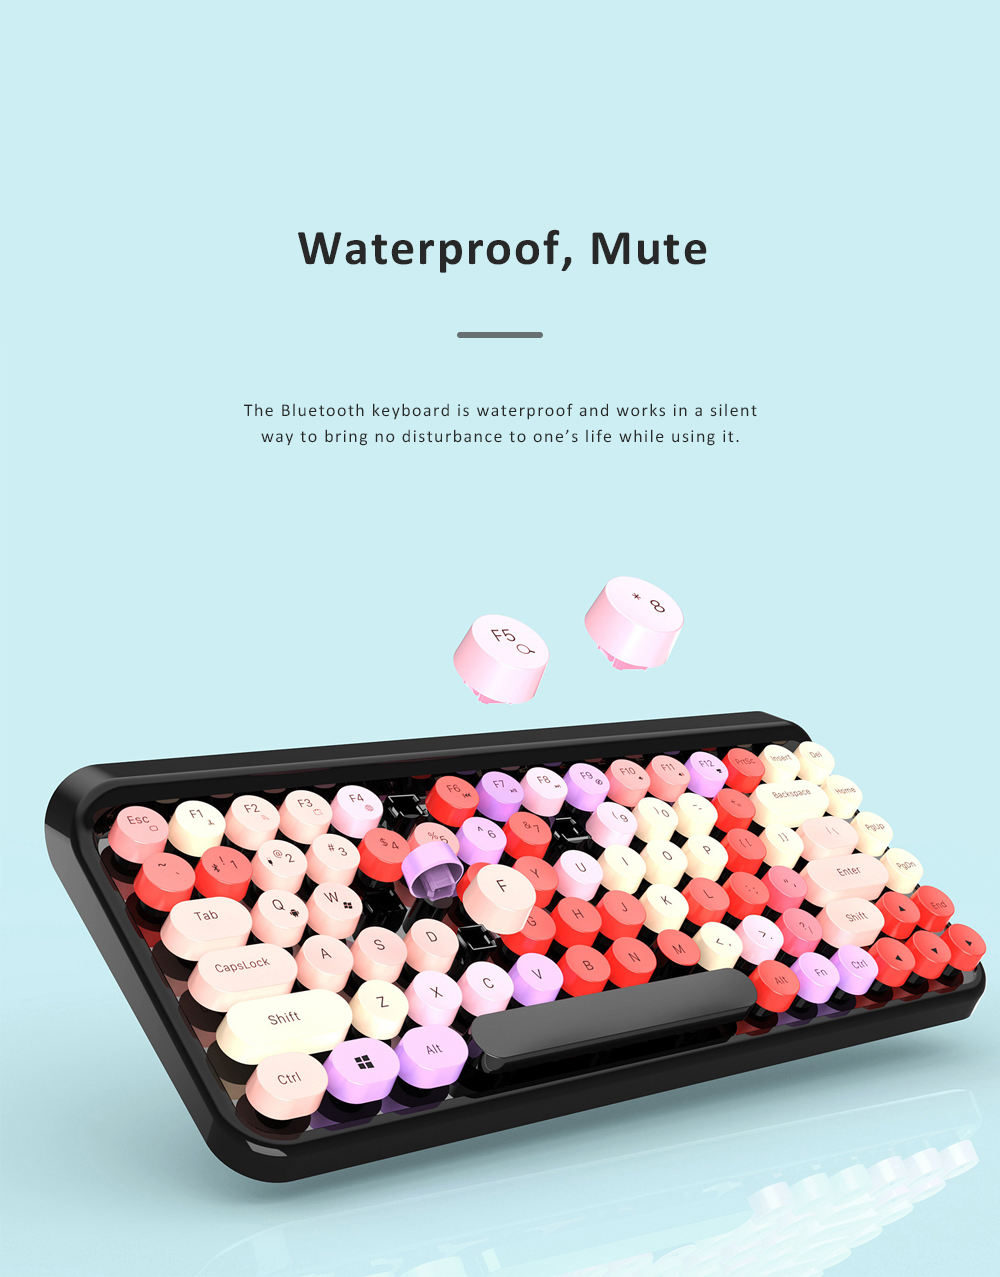 Retro Colorful Punk Bluetooth Keyboard for Office Household Use Waterproof and Mute Keyboard Compatible for Windows, iOS, Android 6